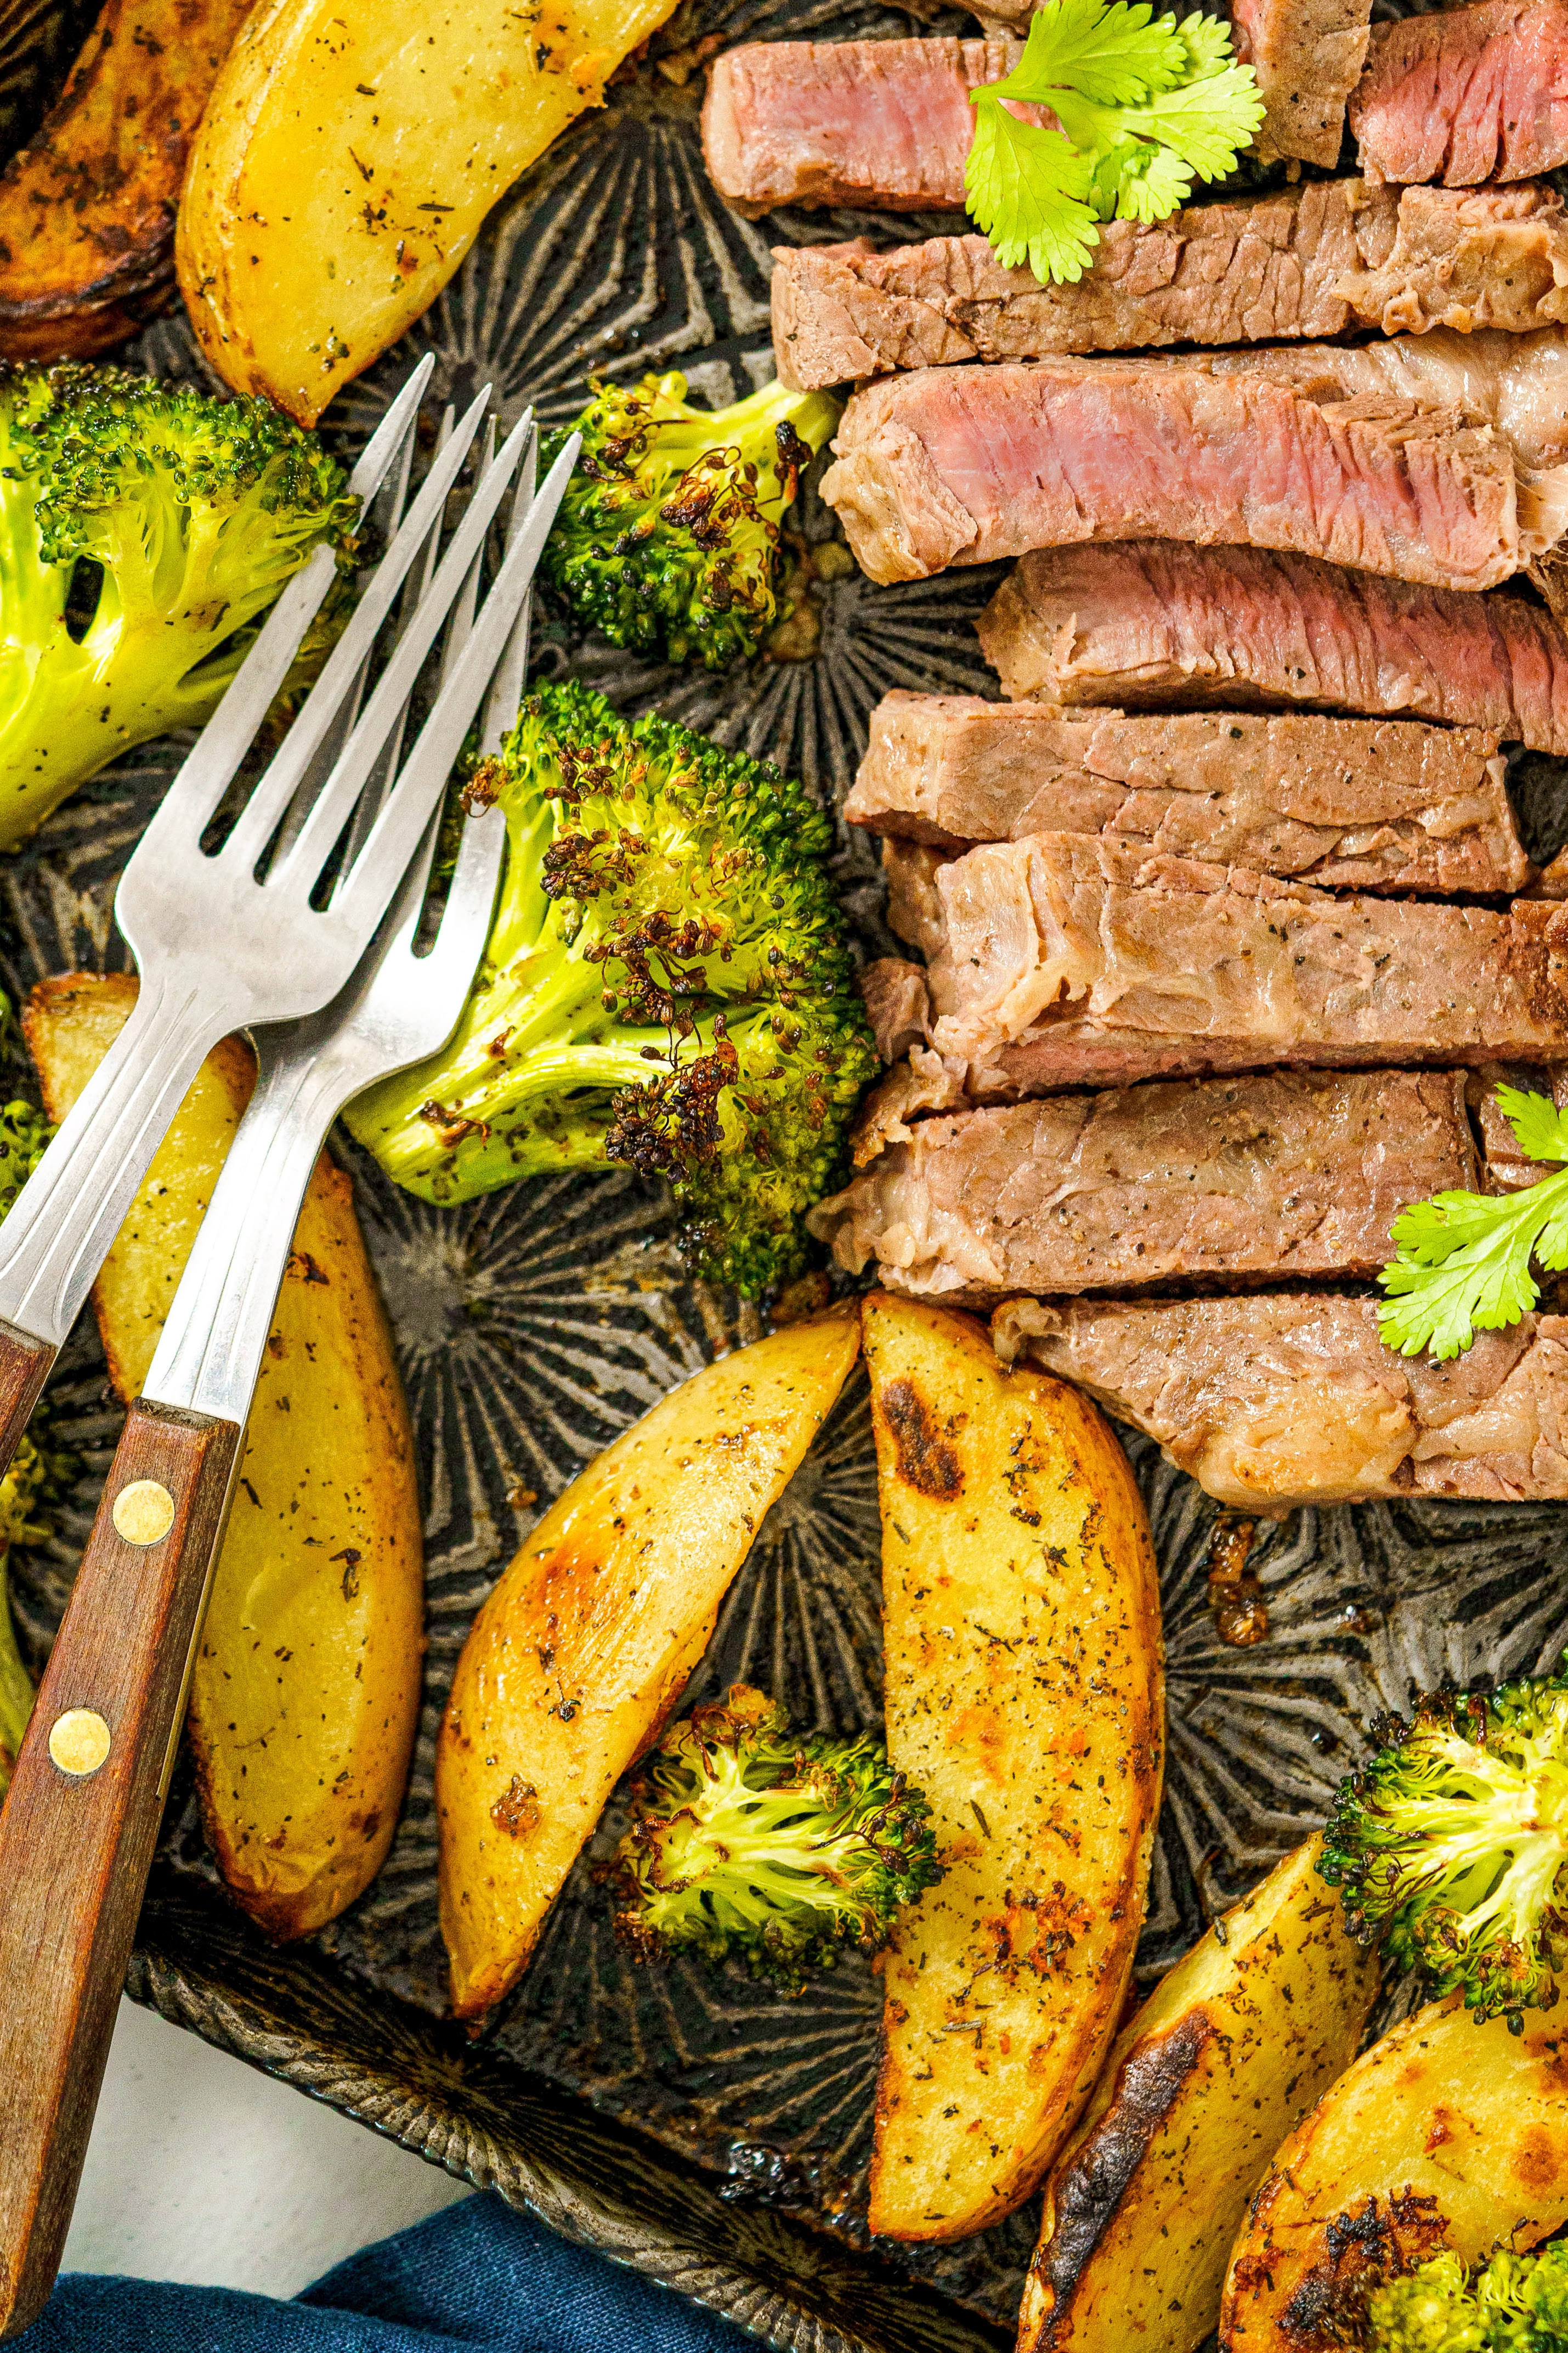 Steak, potato wedges and roasted broccoli on a sheet pan.